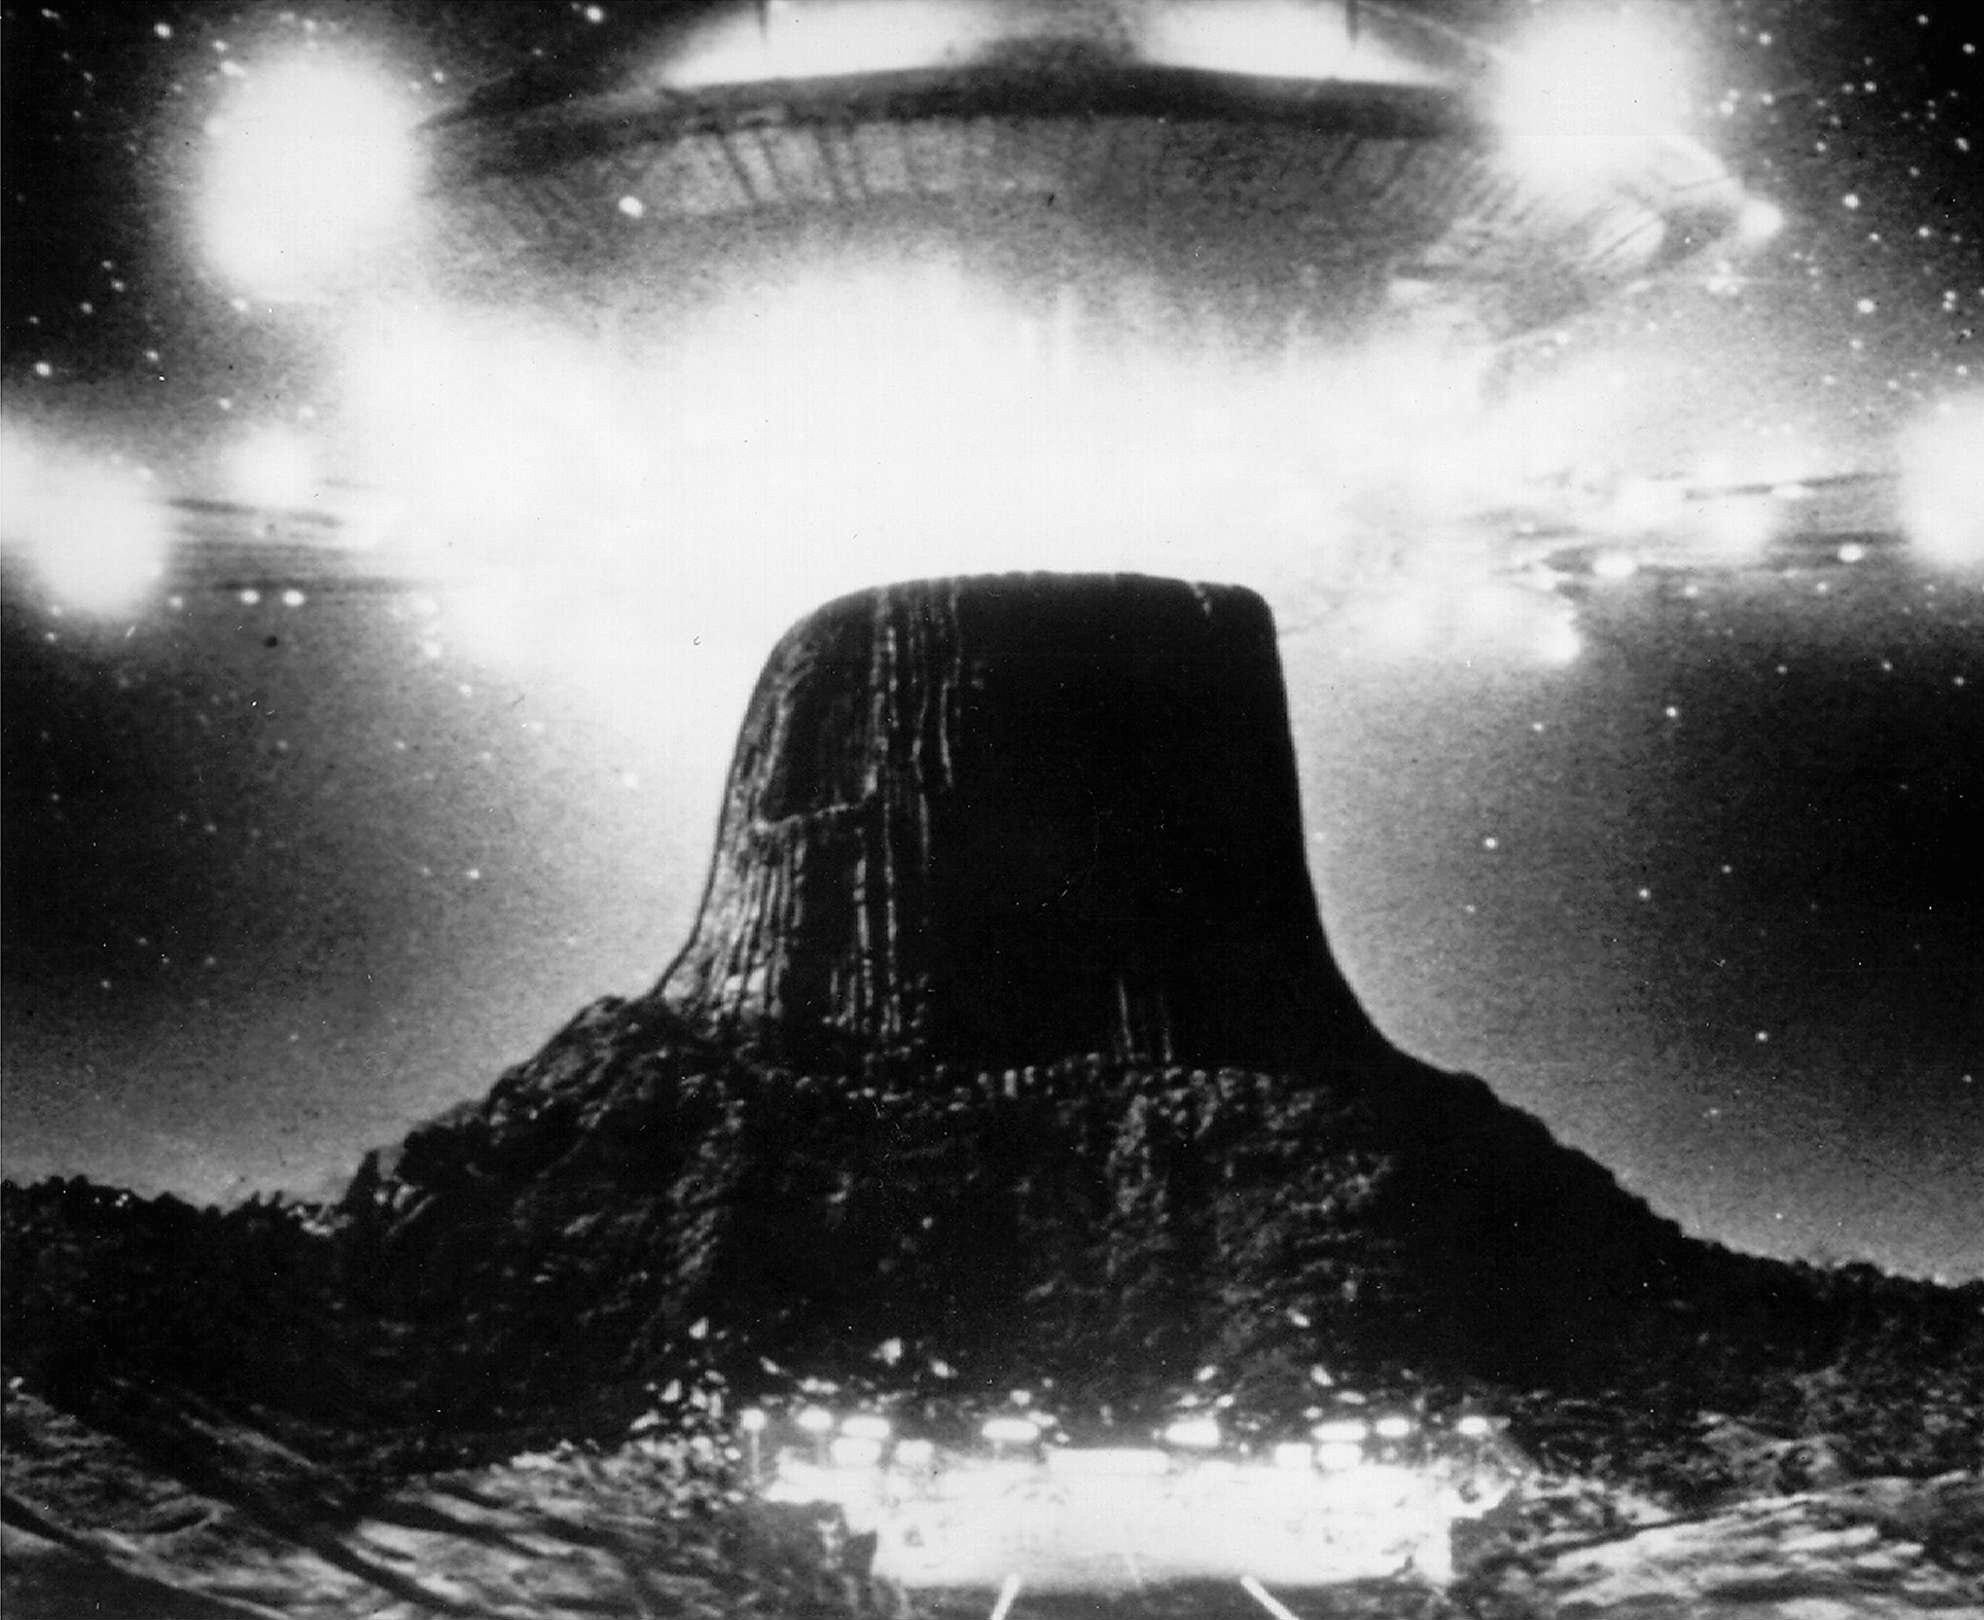 """1977's """"Close Encounters of the Third King"""" is among the films screening at the salute to Douglas Trumbull."""